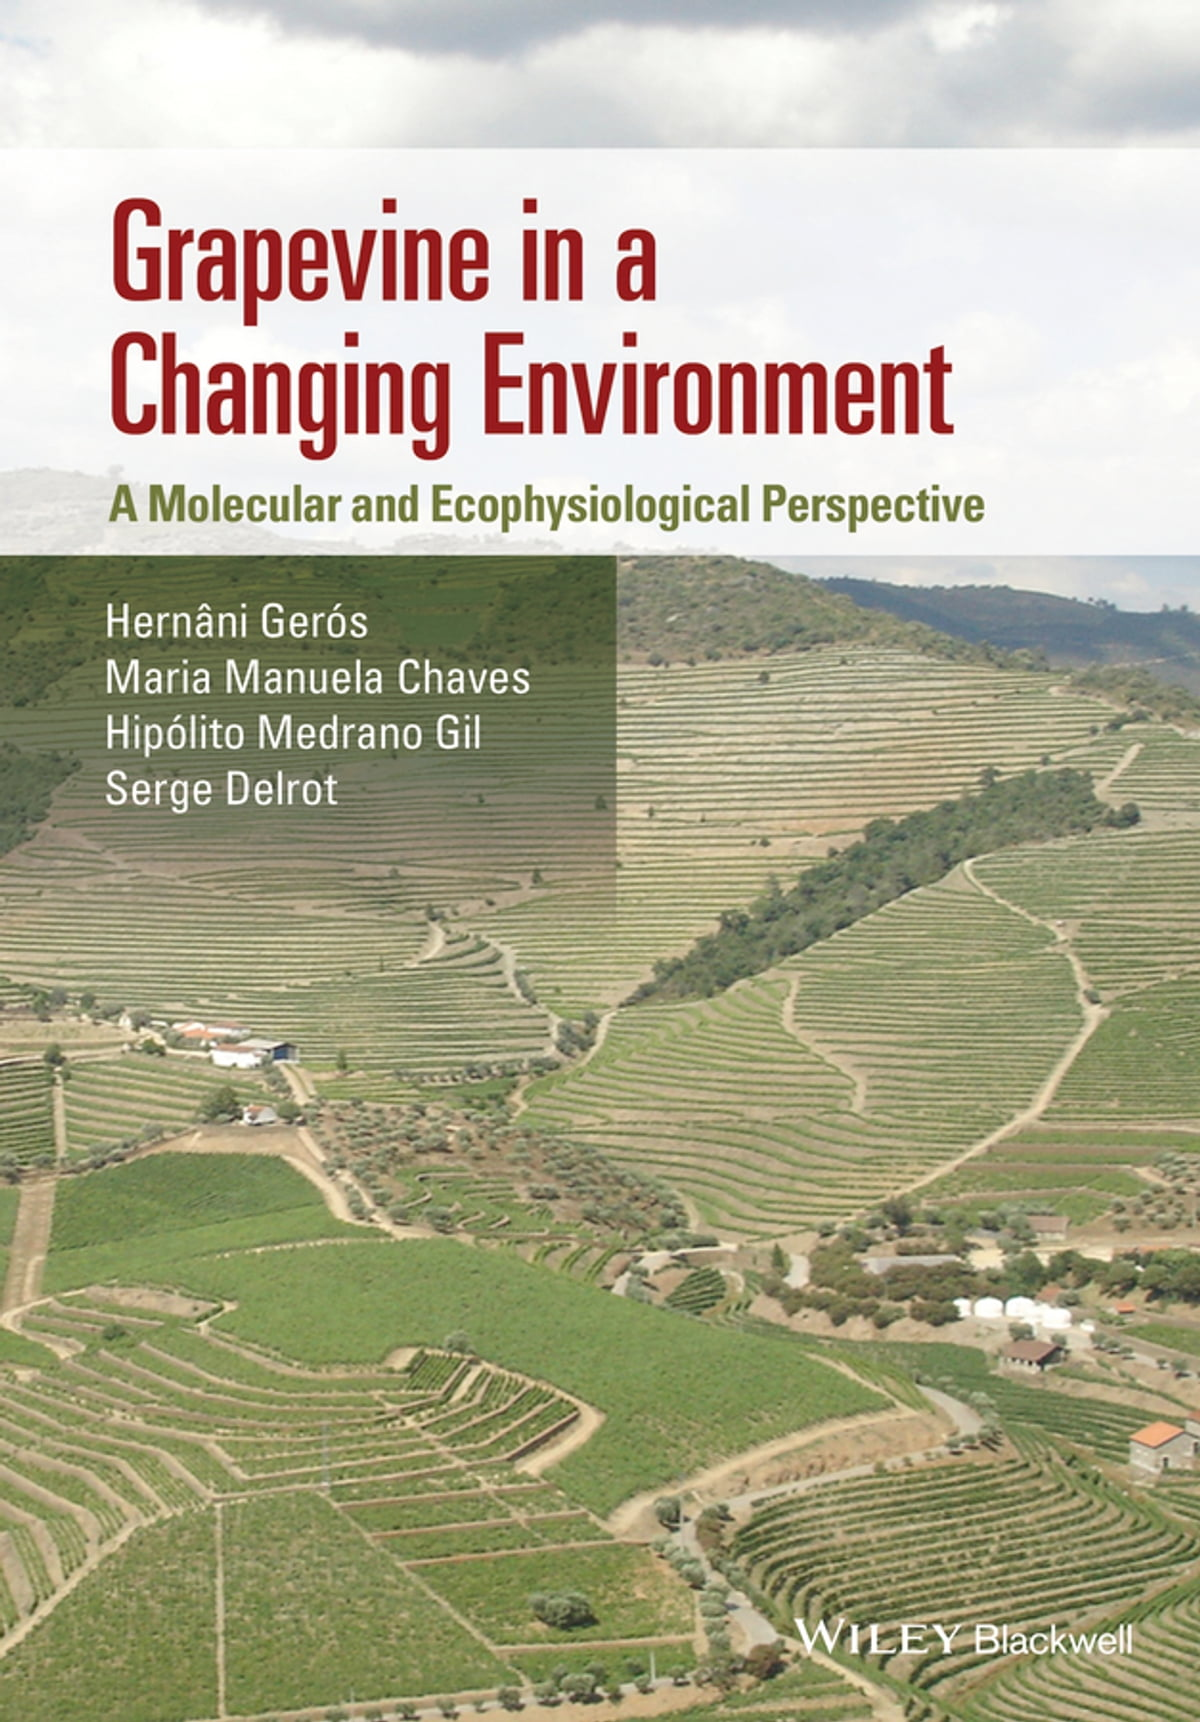 Grapevine in a Changing Environment eBook by Maria Manuela Chaves ...